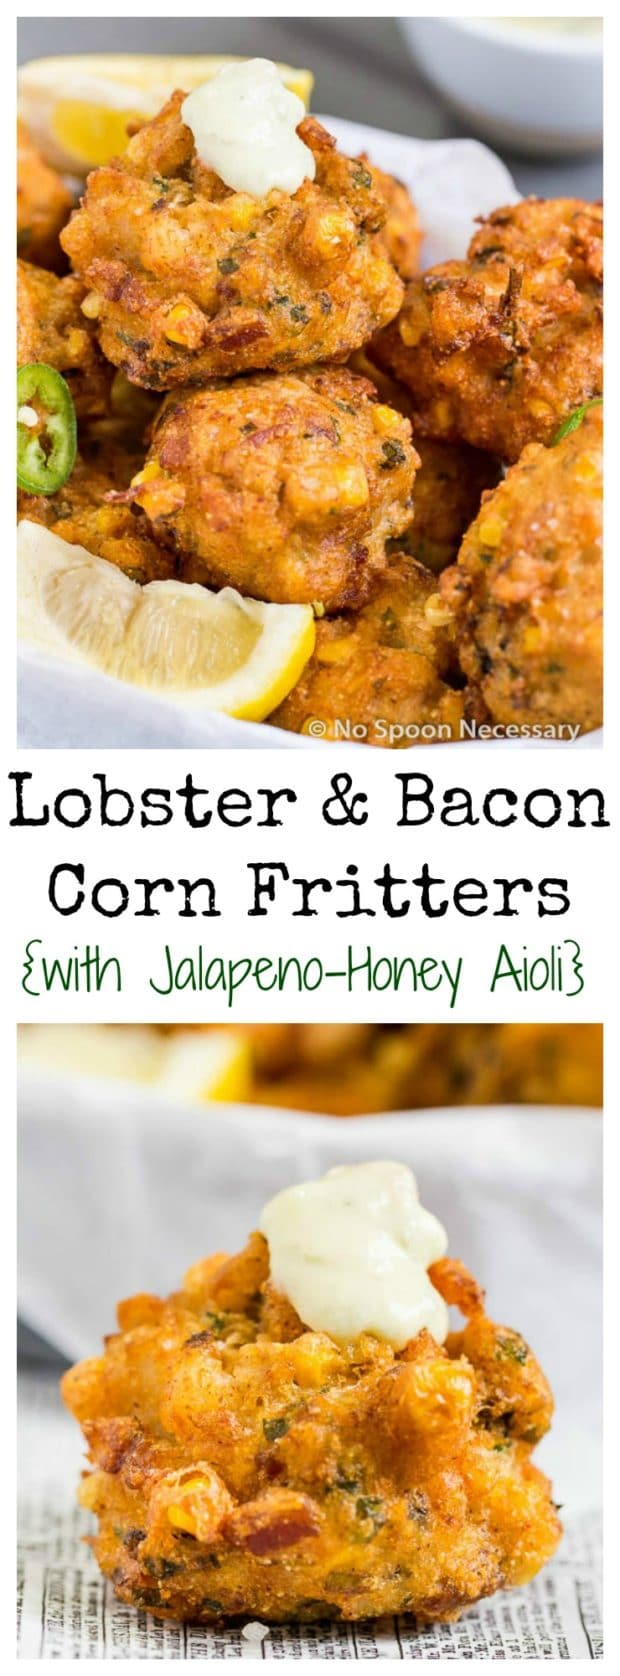 Lobster & Bacon Corn Fritters